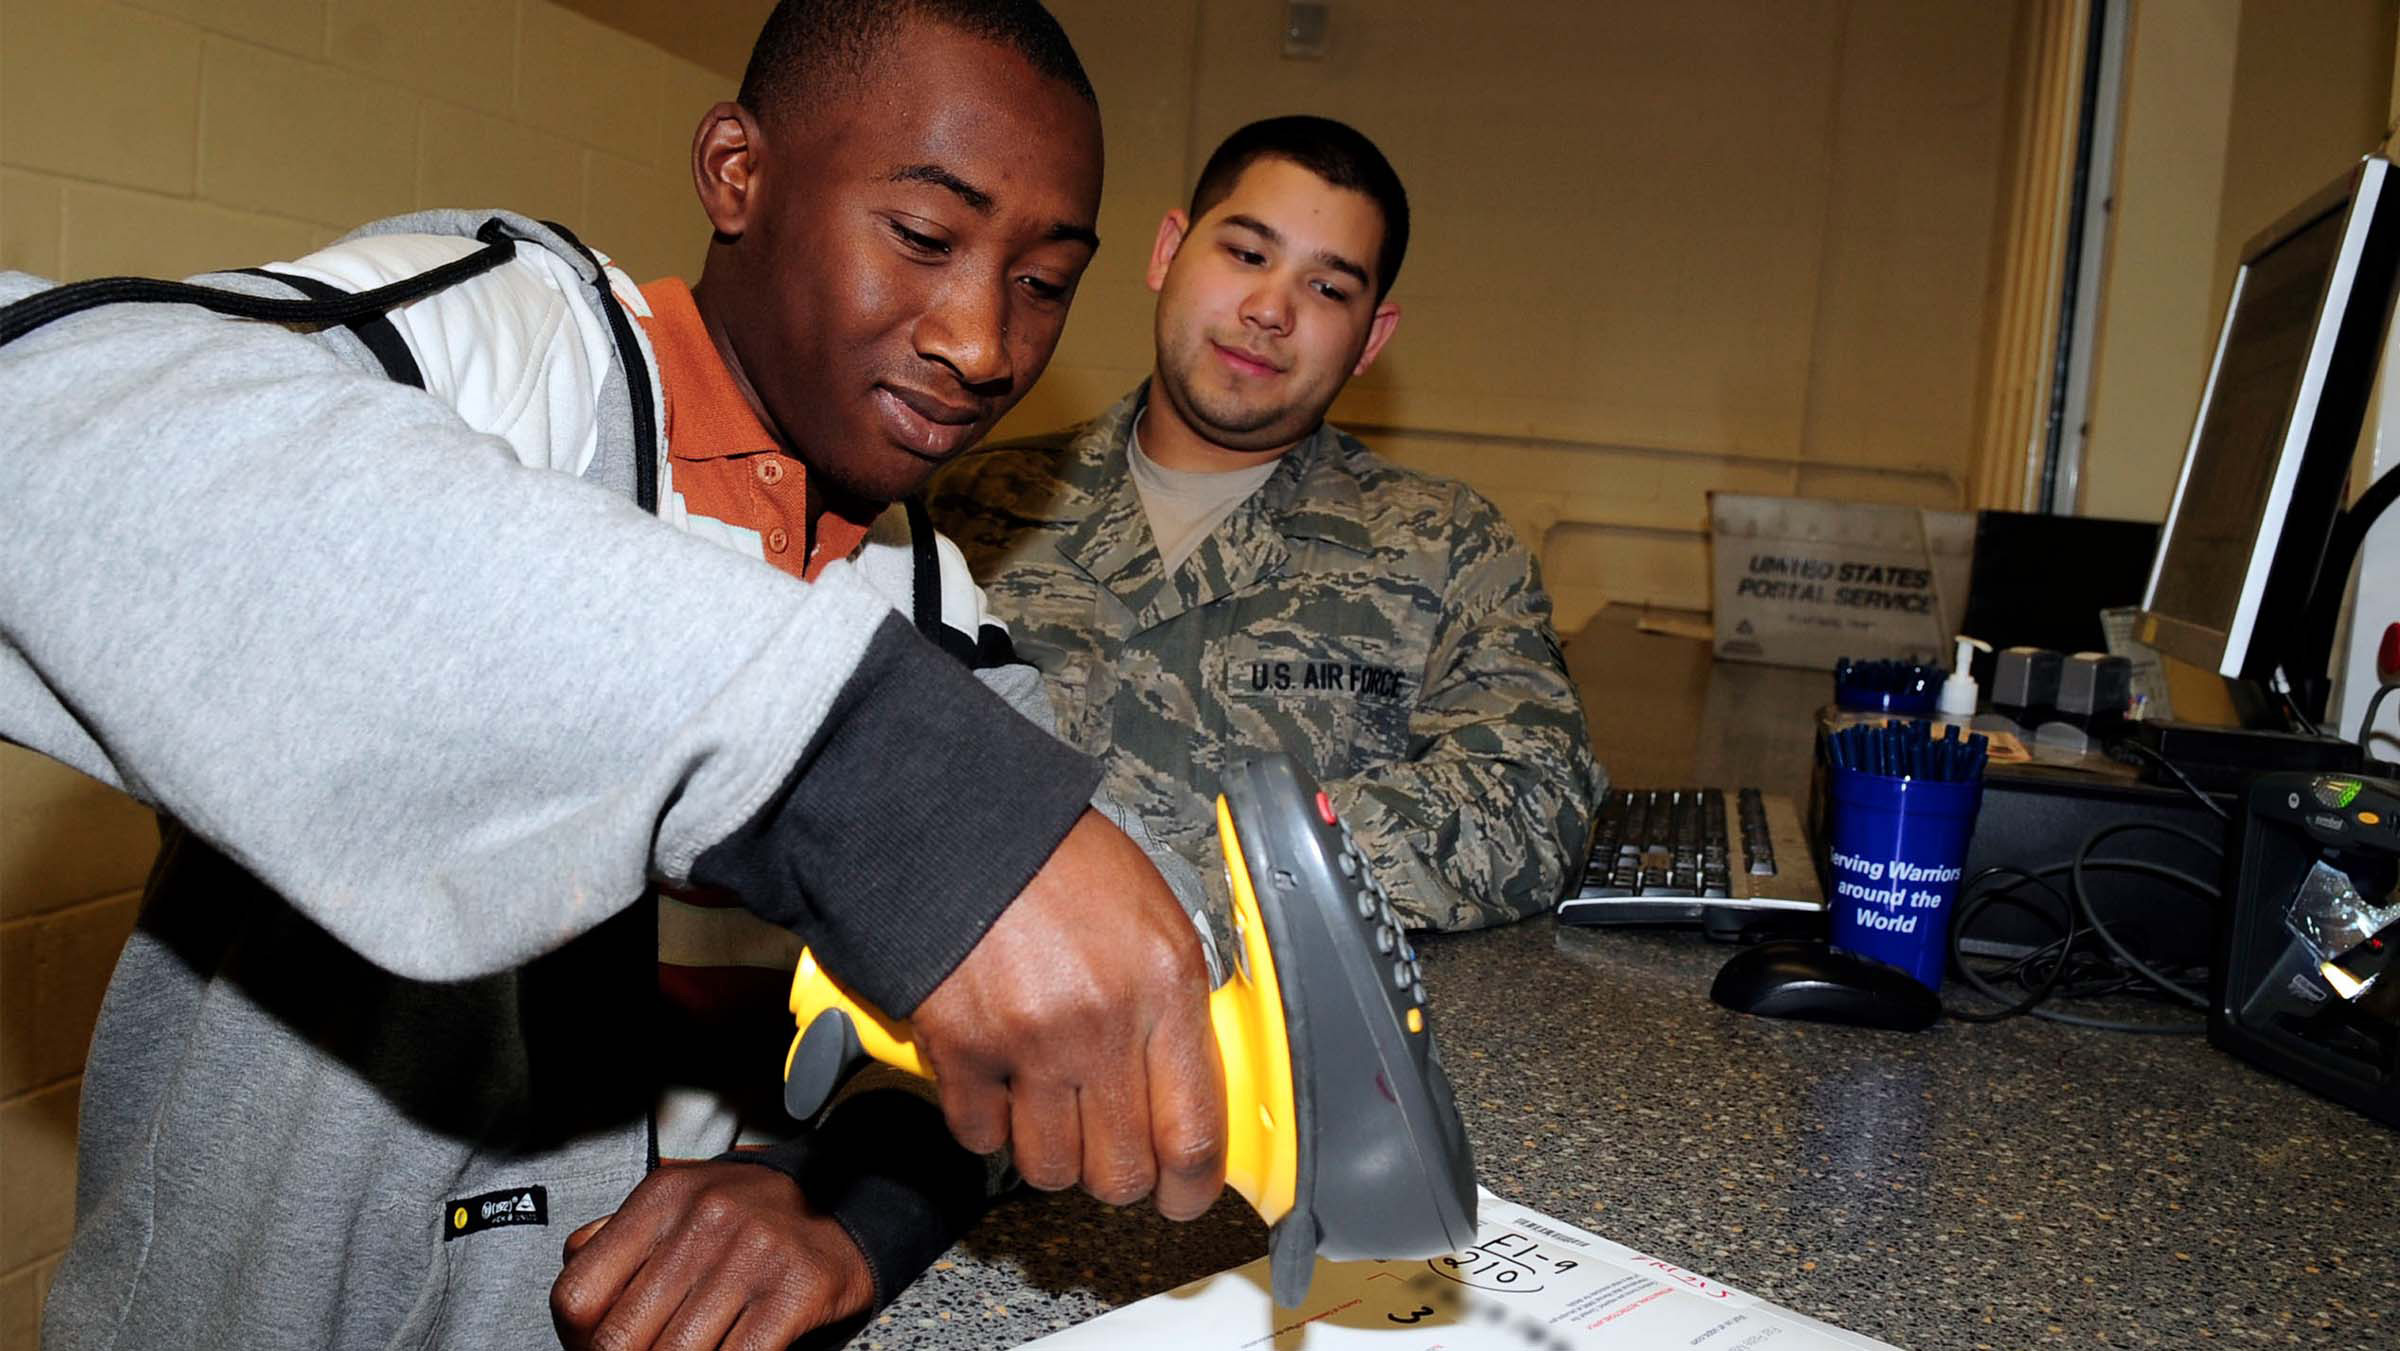 Man working with service member